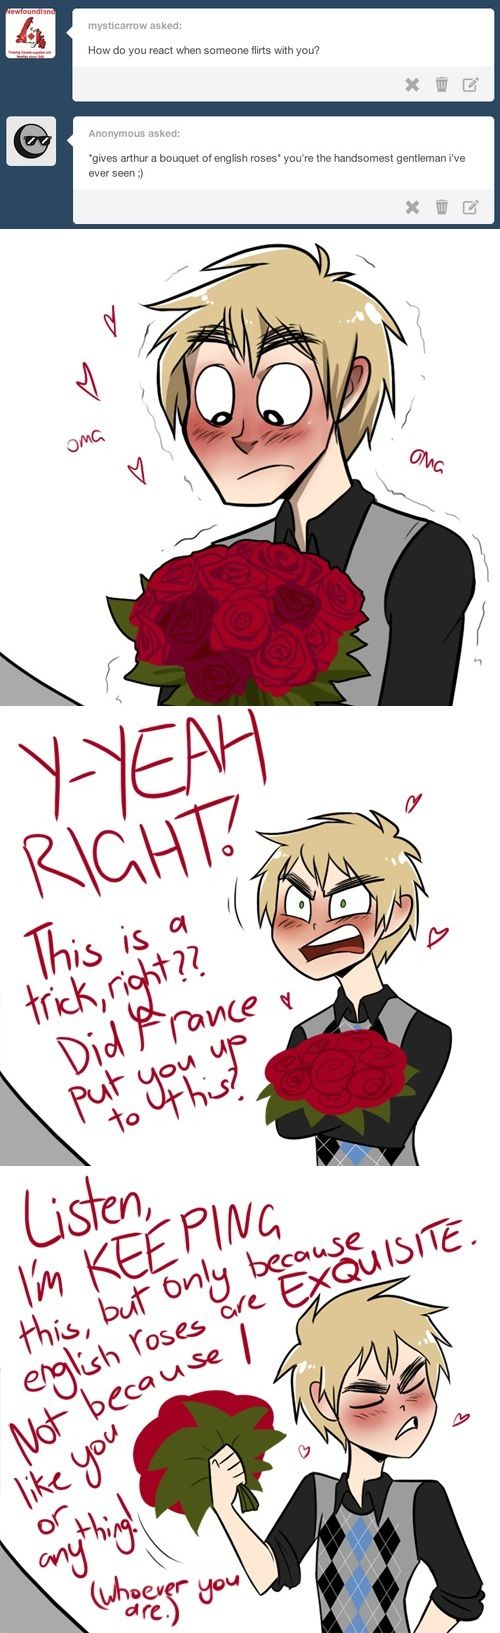 Me: *le throws some English roses at him through a window and runs away* SHIP SHIP SHIP SHIP SHIP SHIP SHIIIIIP! England: OW! WHAT THE BLOOD-- Huh? *LE BLUSHES!*